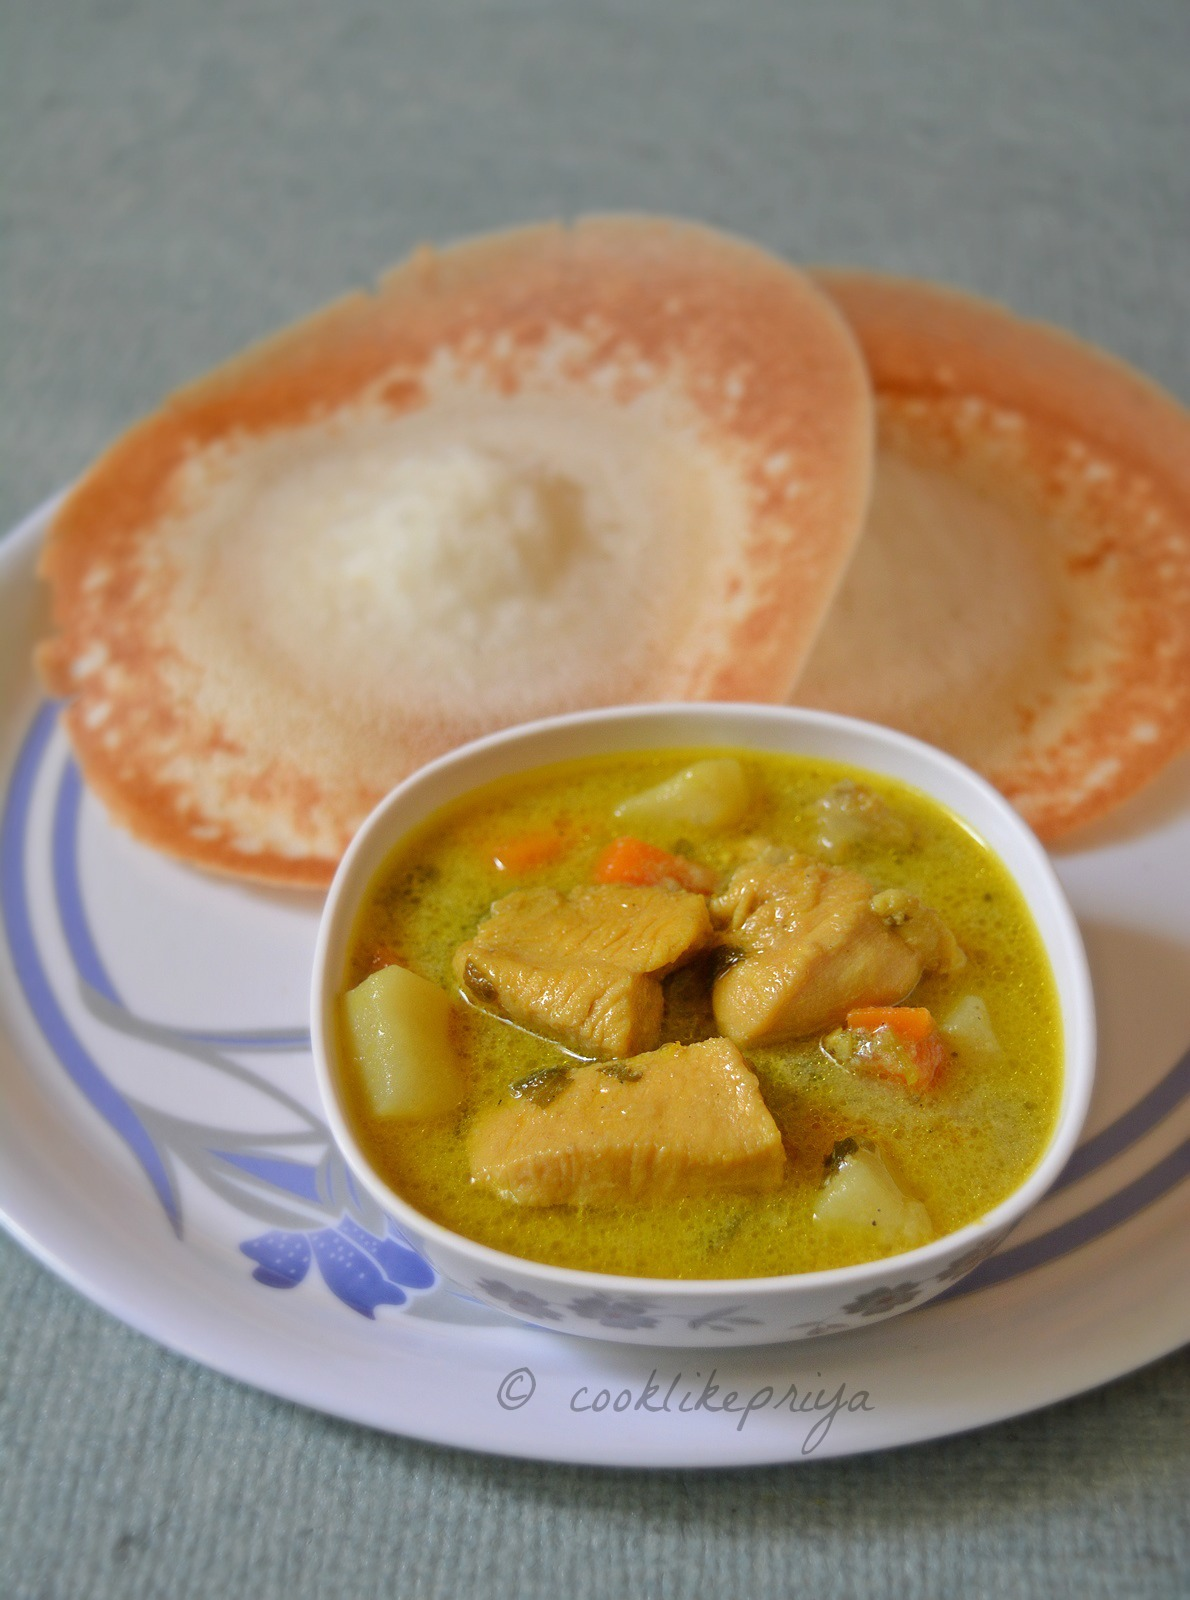 Chicken coconut milk curry for appam/ idiyappam